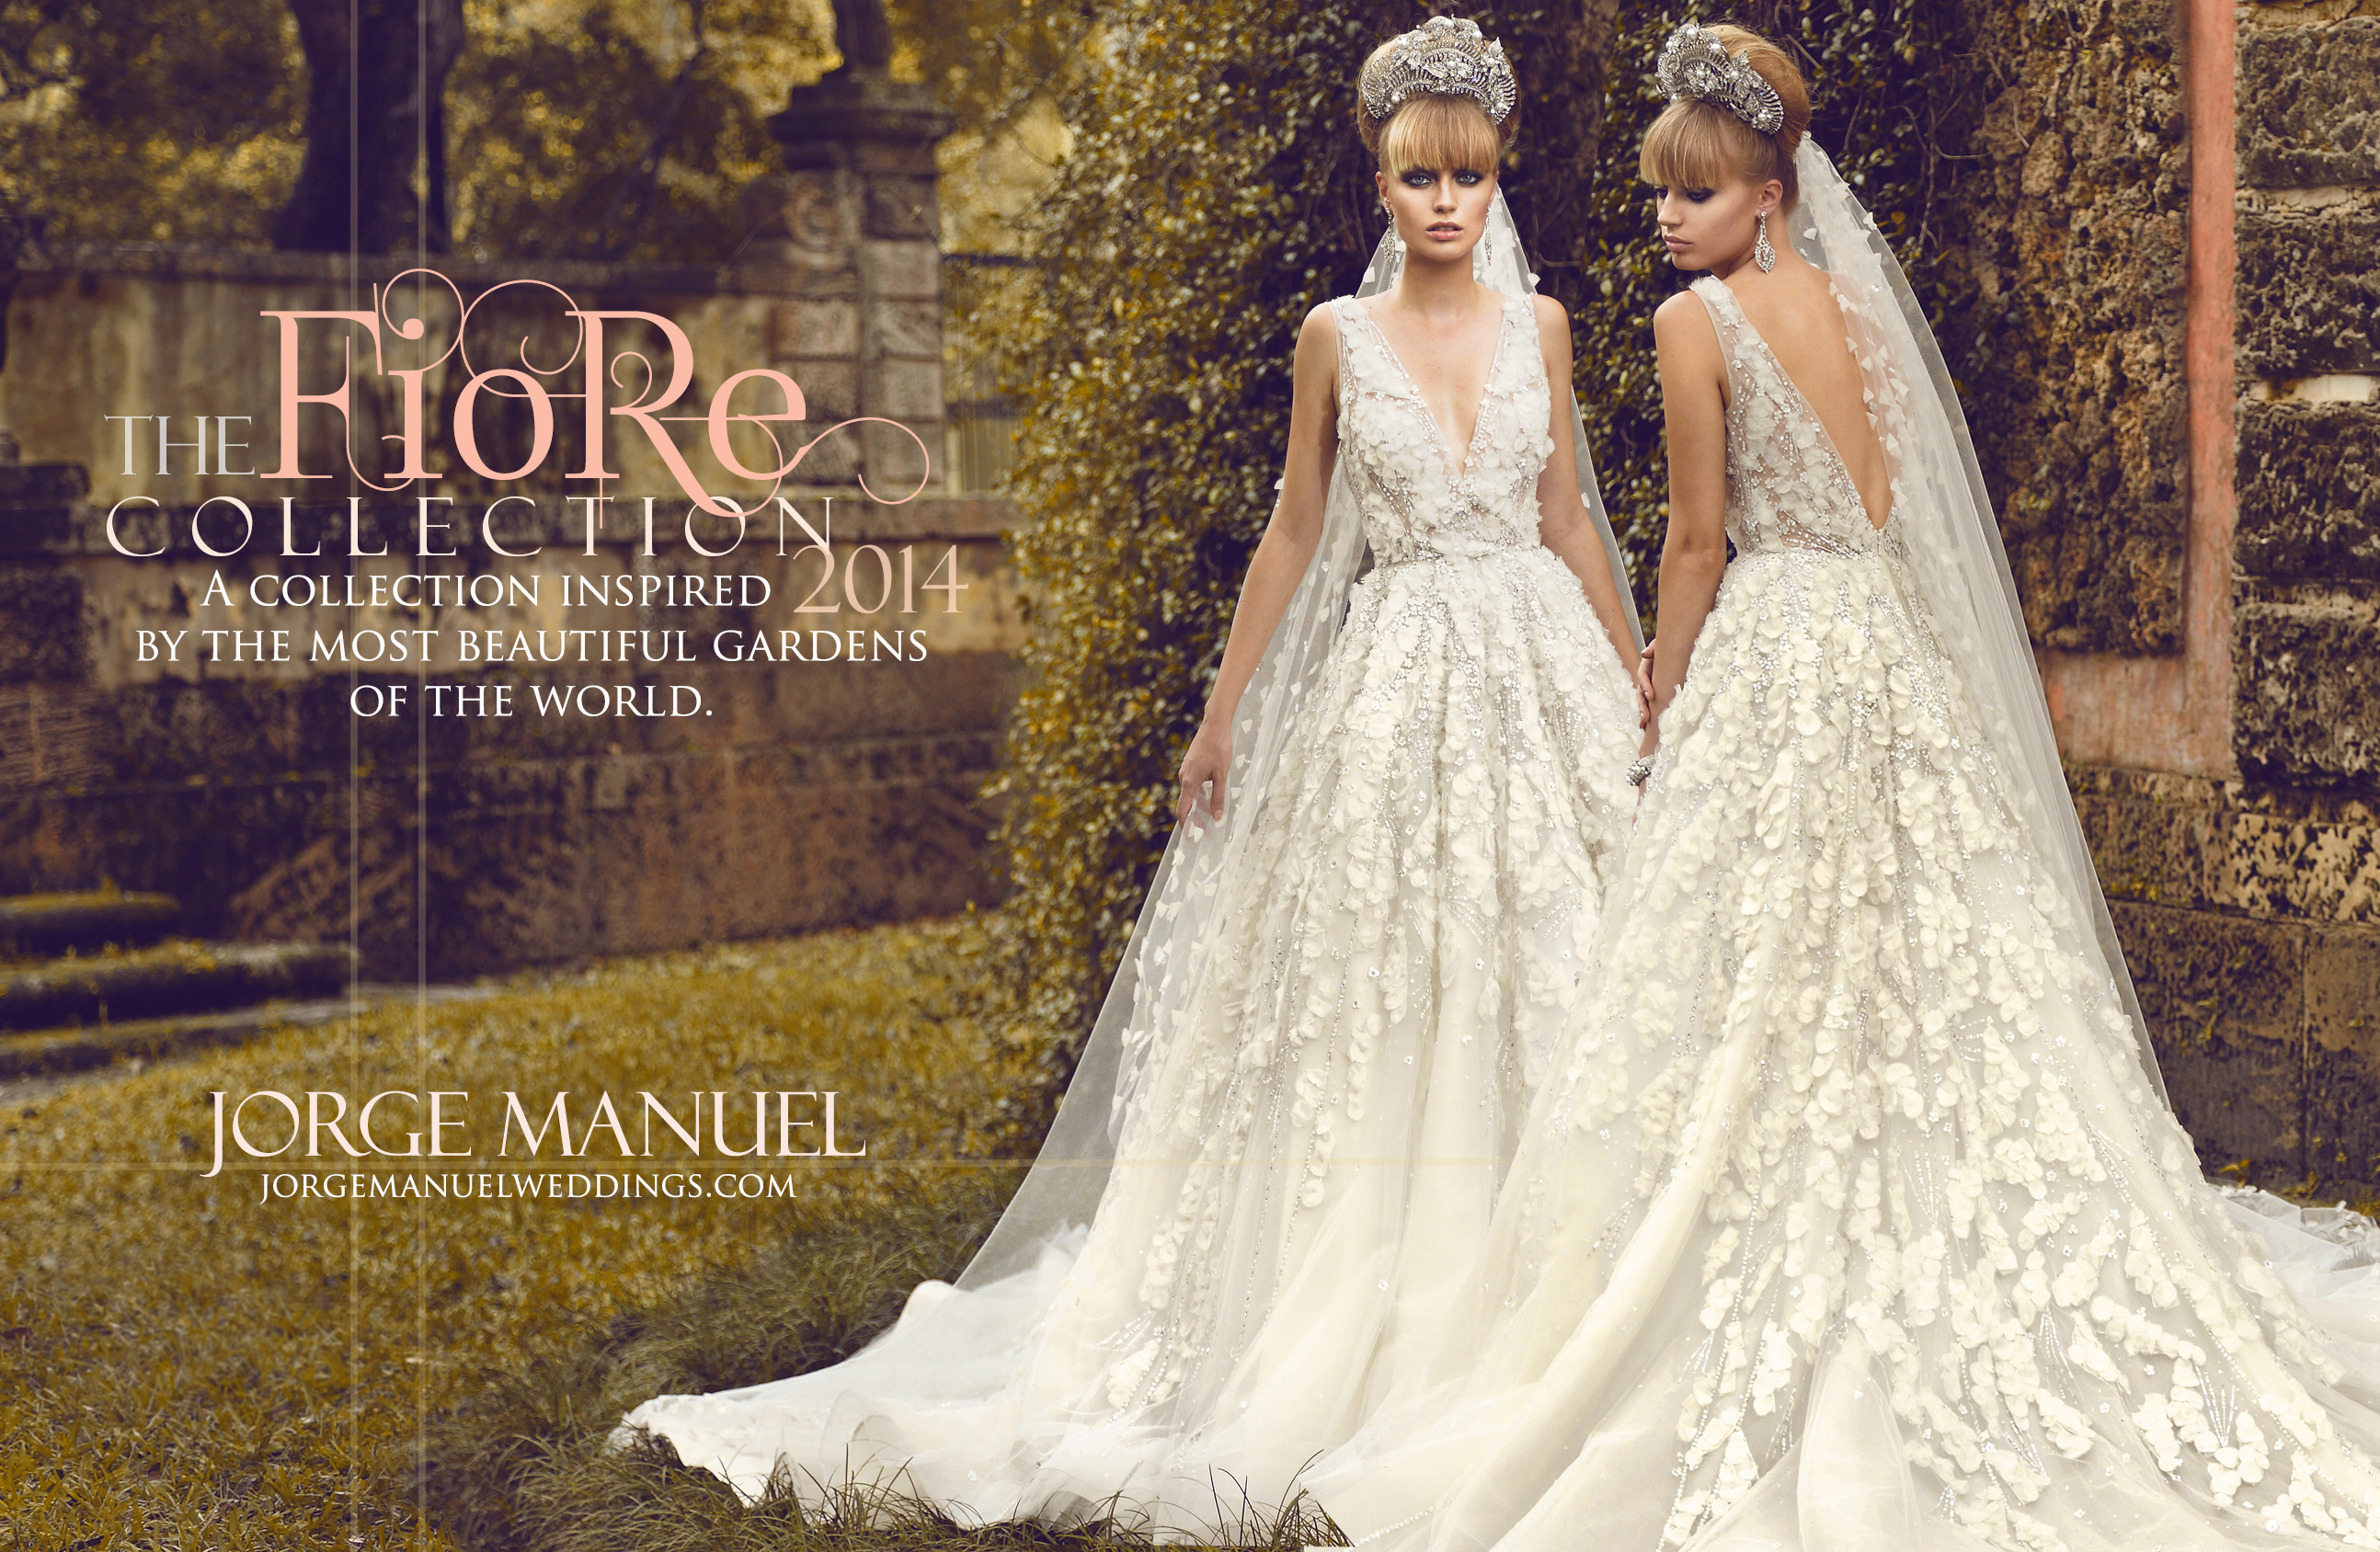 Fiore-Collection-Flyer-frnt